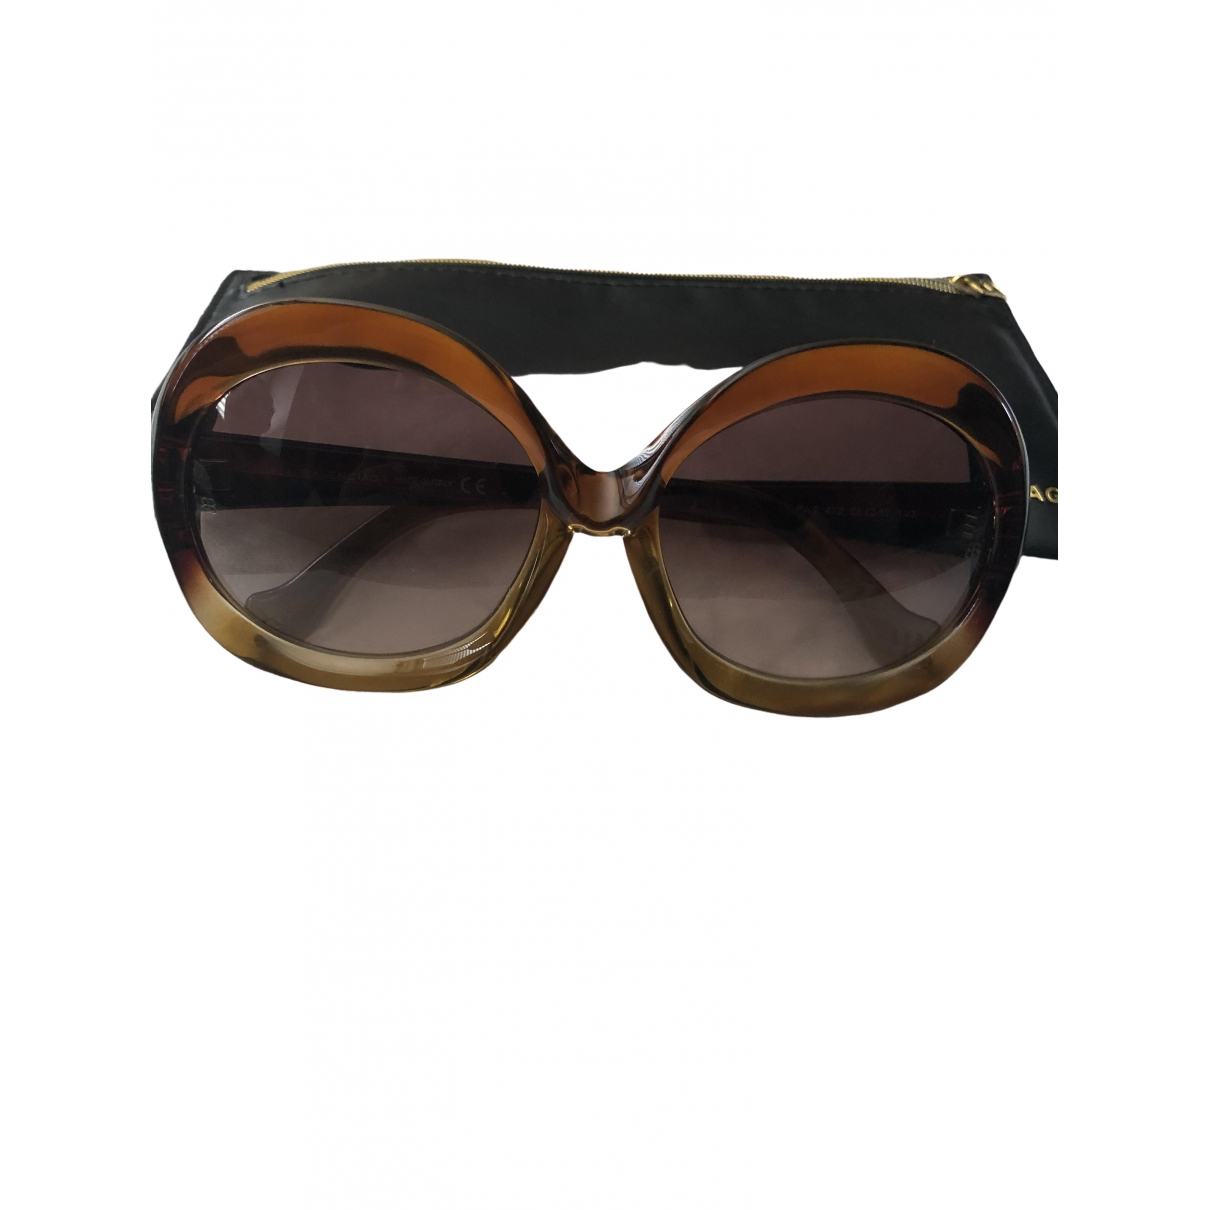 Balenciaga \N Brown Sunglasses for Women \N